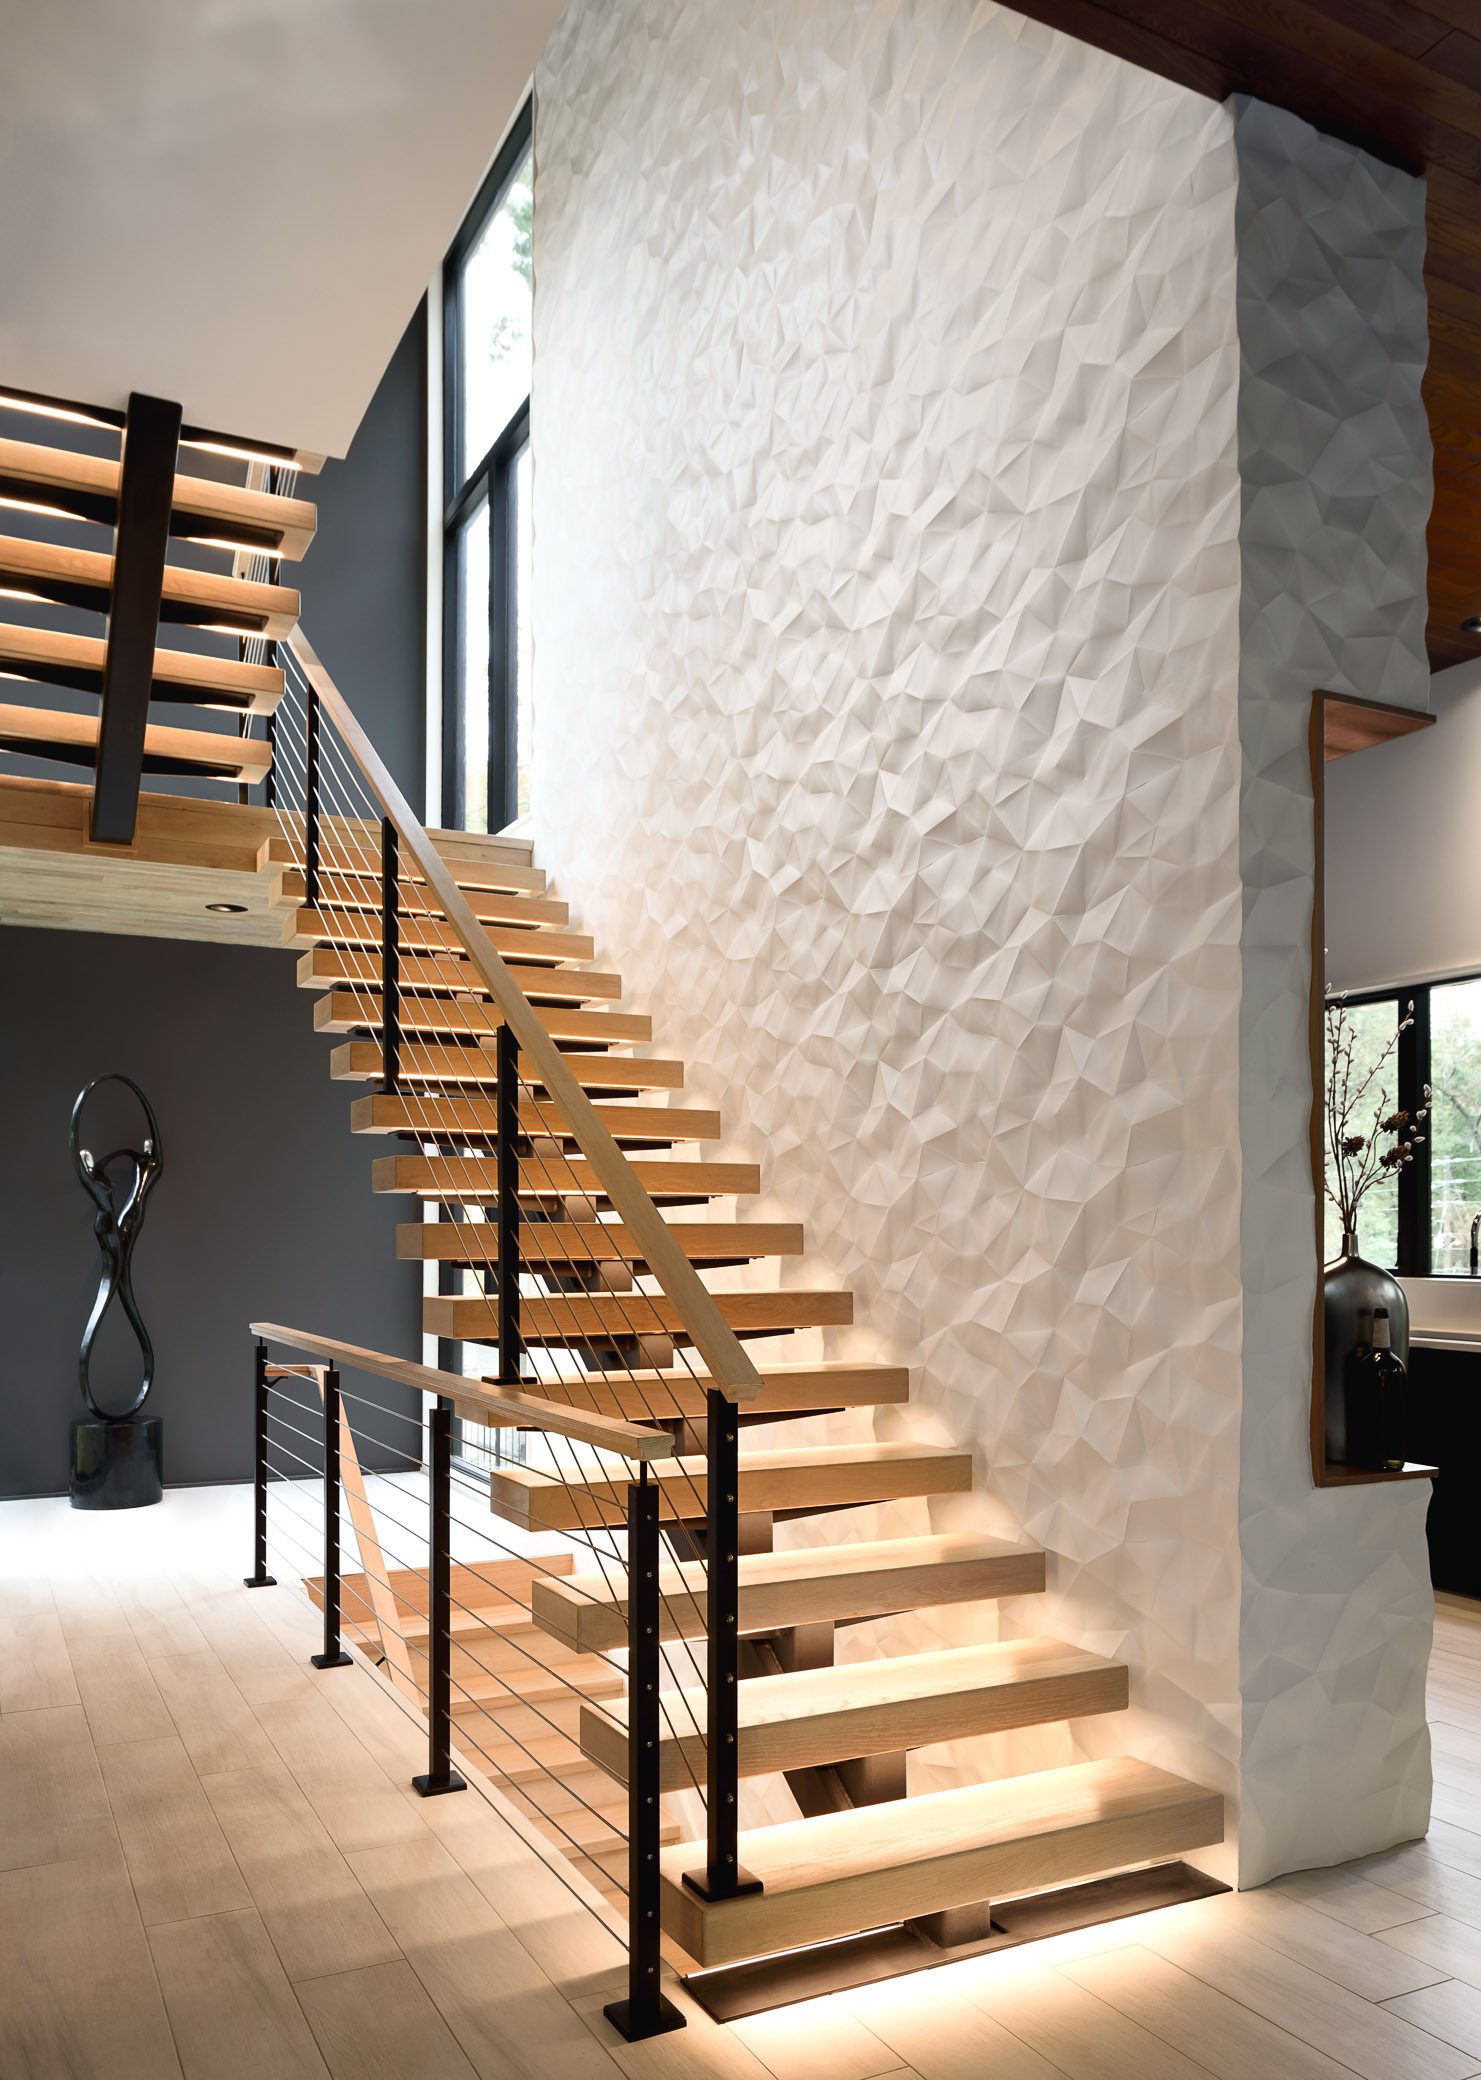 Residential Stairway Feature Wall, Interiors Architecture Design - © Daniel Green Architectural + Interiors Photography